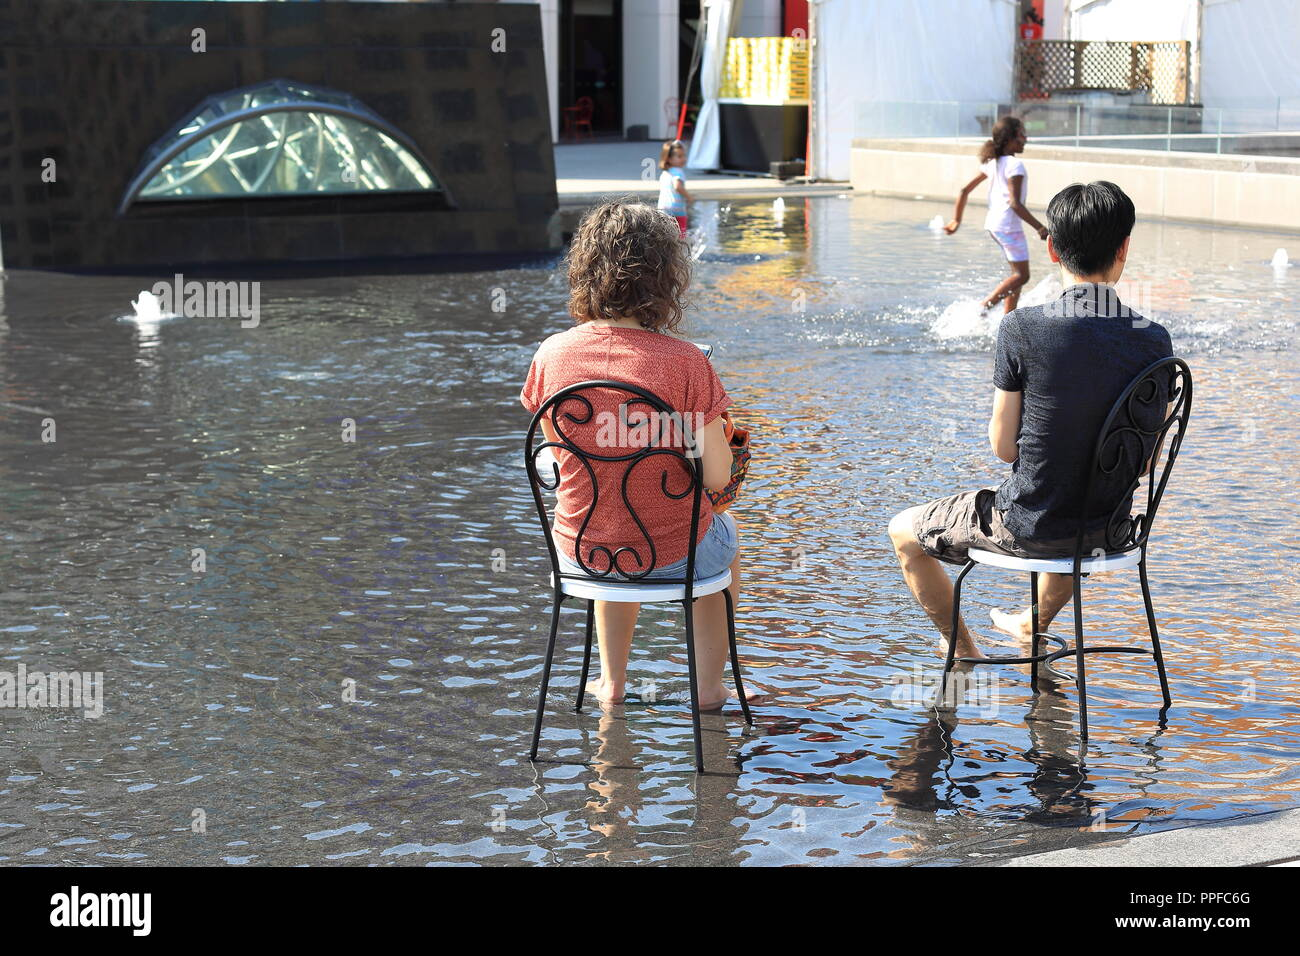 A couple of adults sitting in a city wading pool in downtown Montreal,Canada - Stock Image